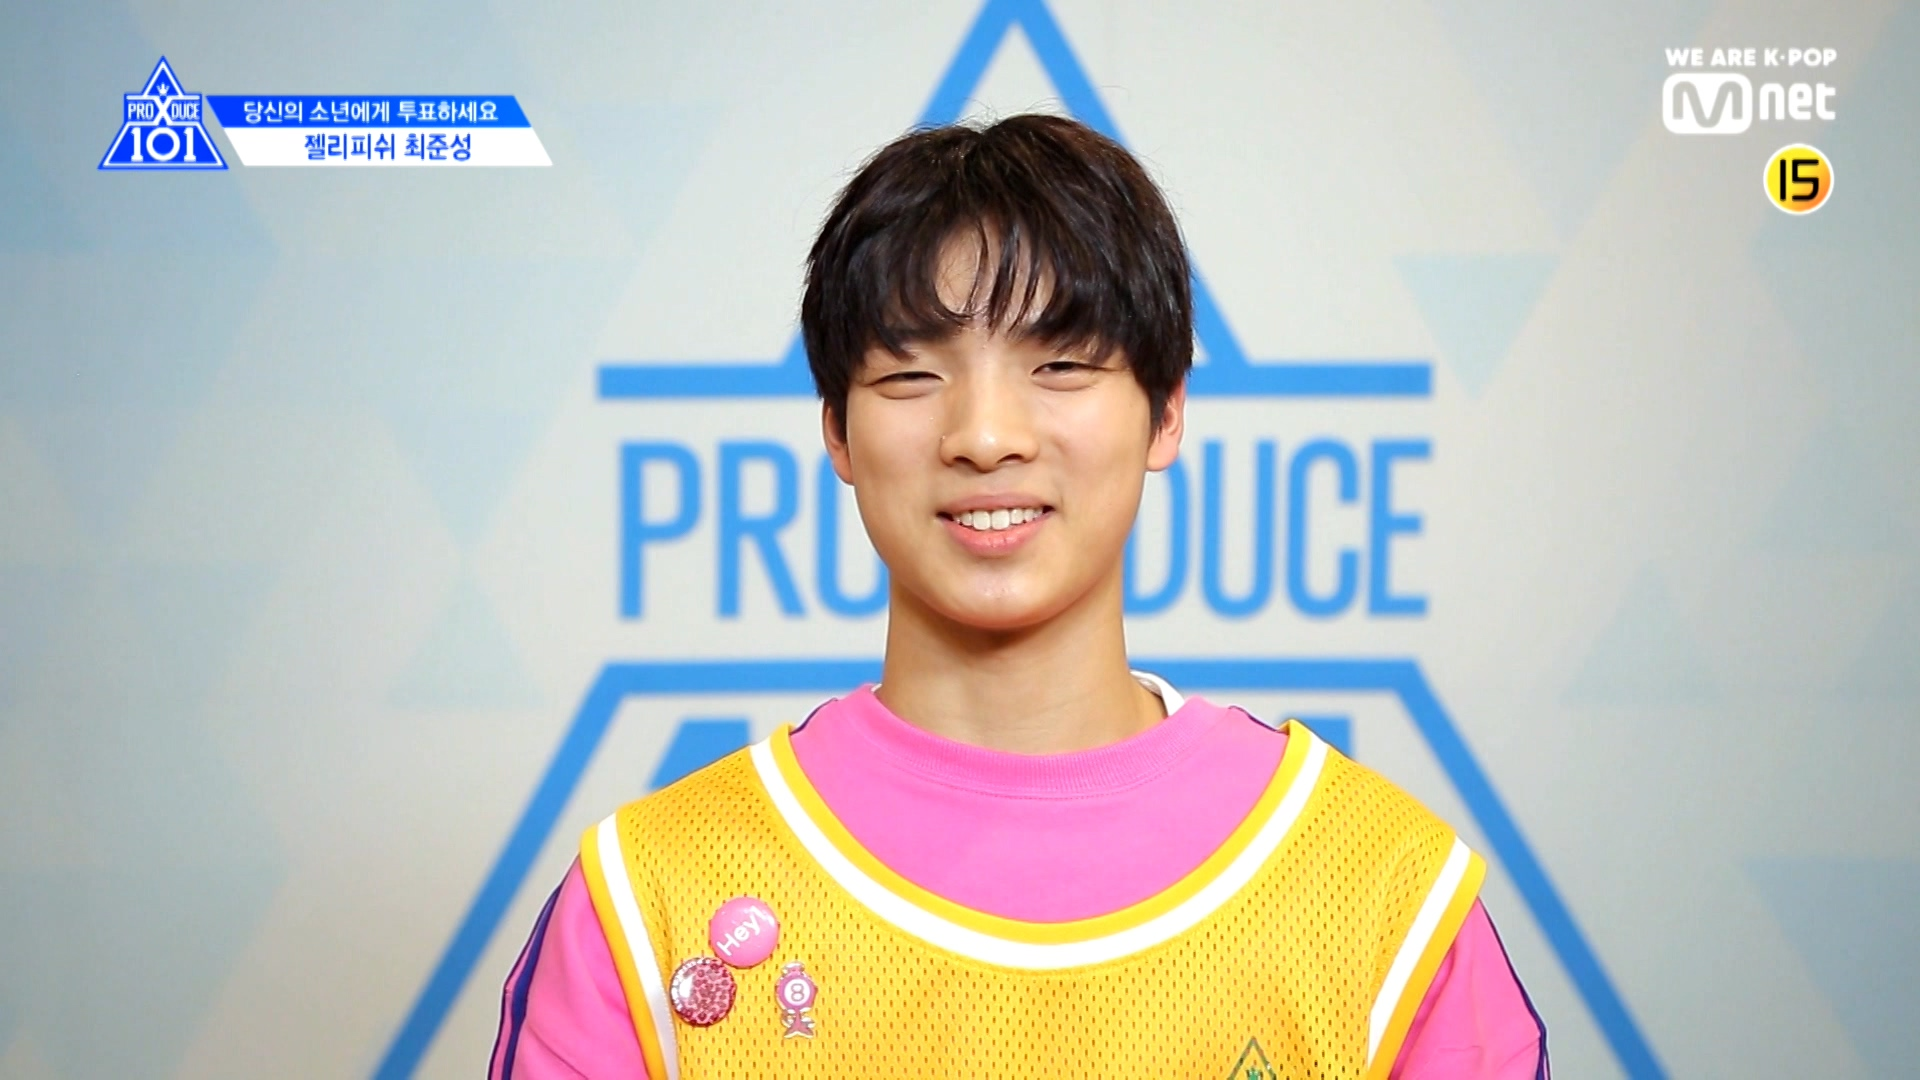 [PRODUCE X 101] EYE CONTACT CHALLENGE l CHOI JUN SEONG(Jellyfish)